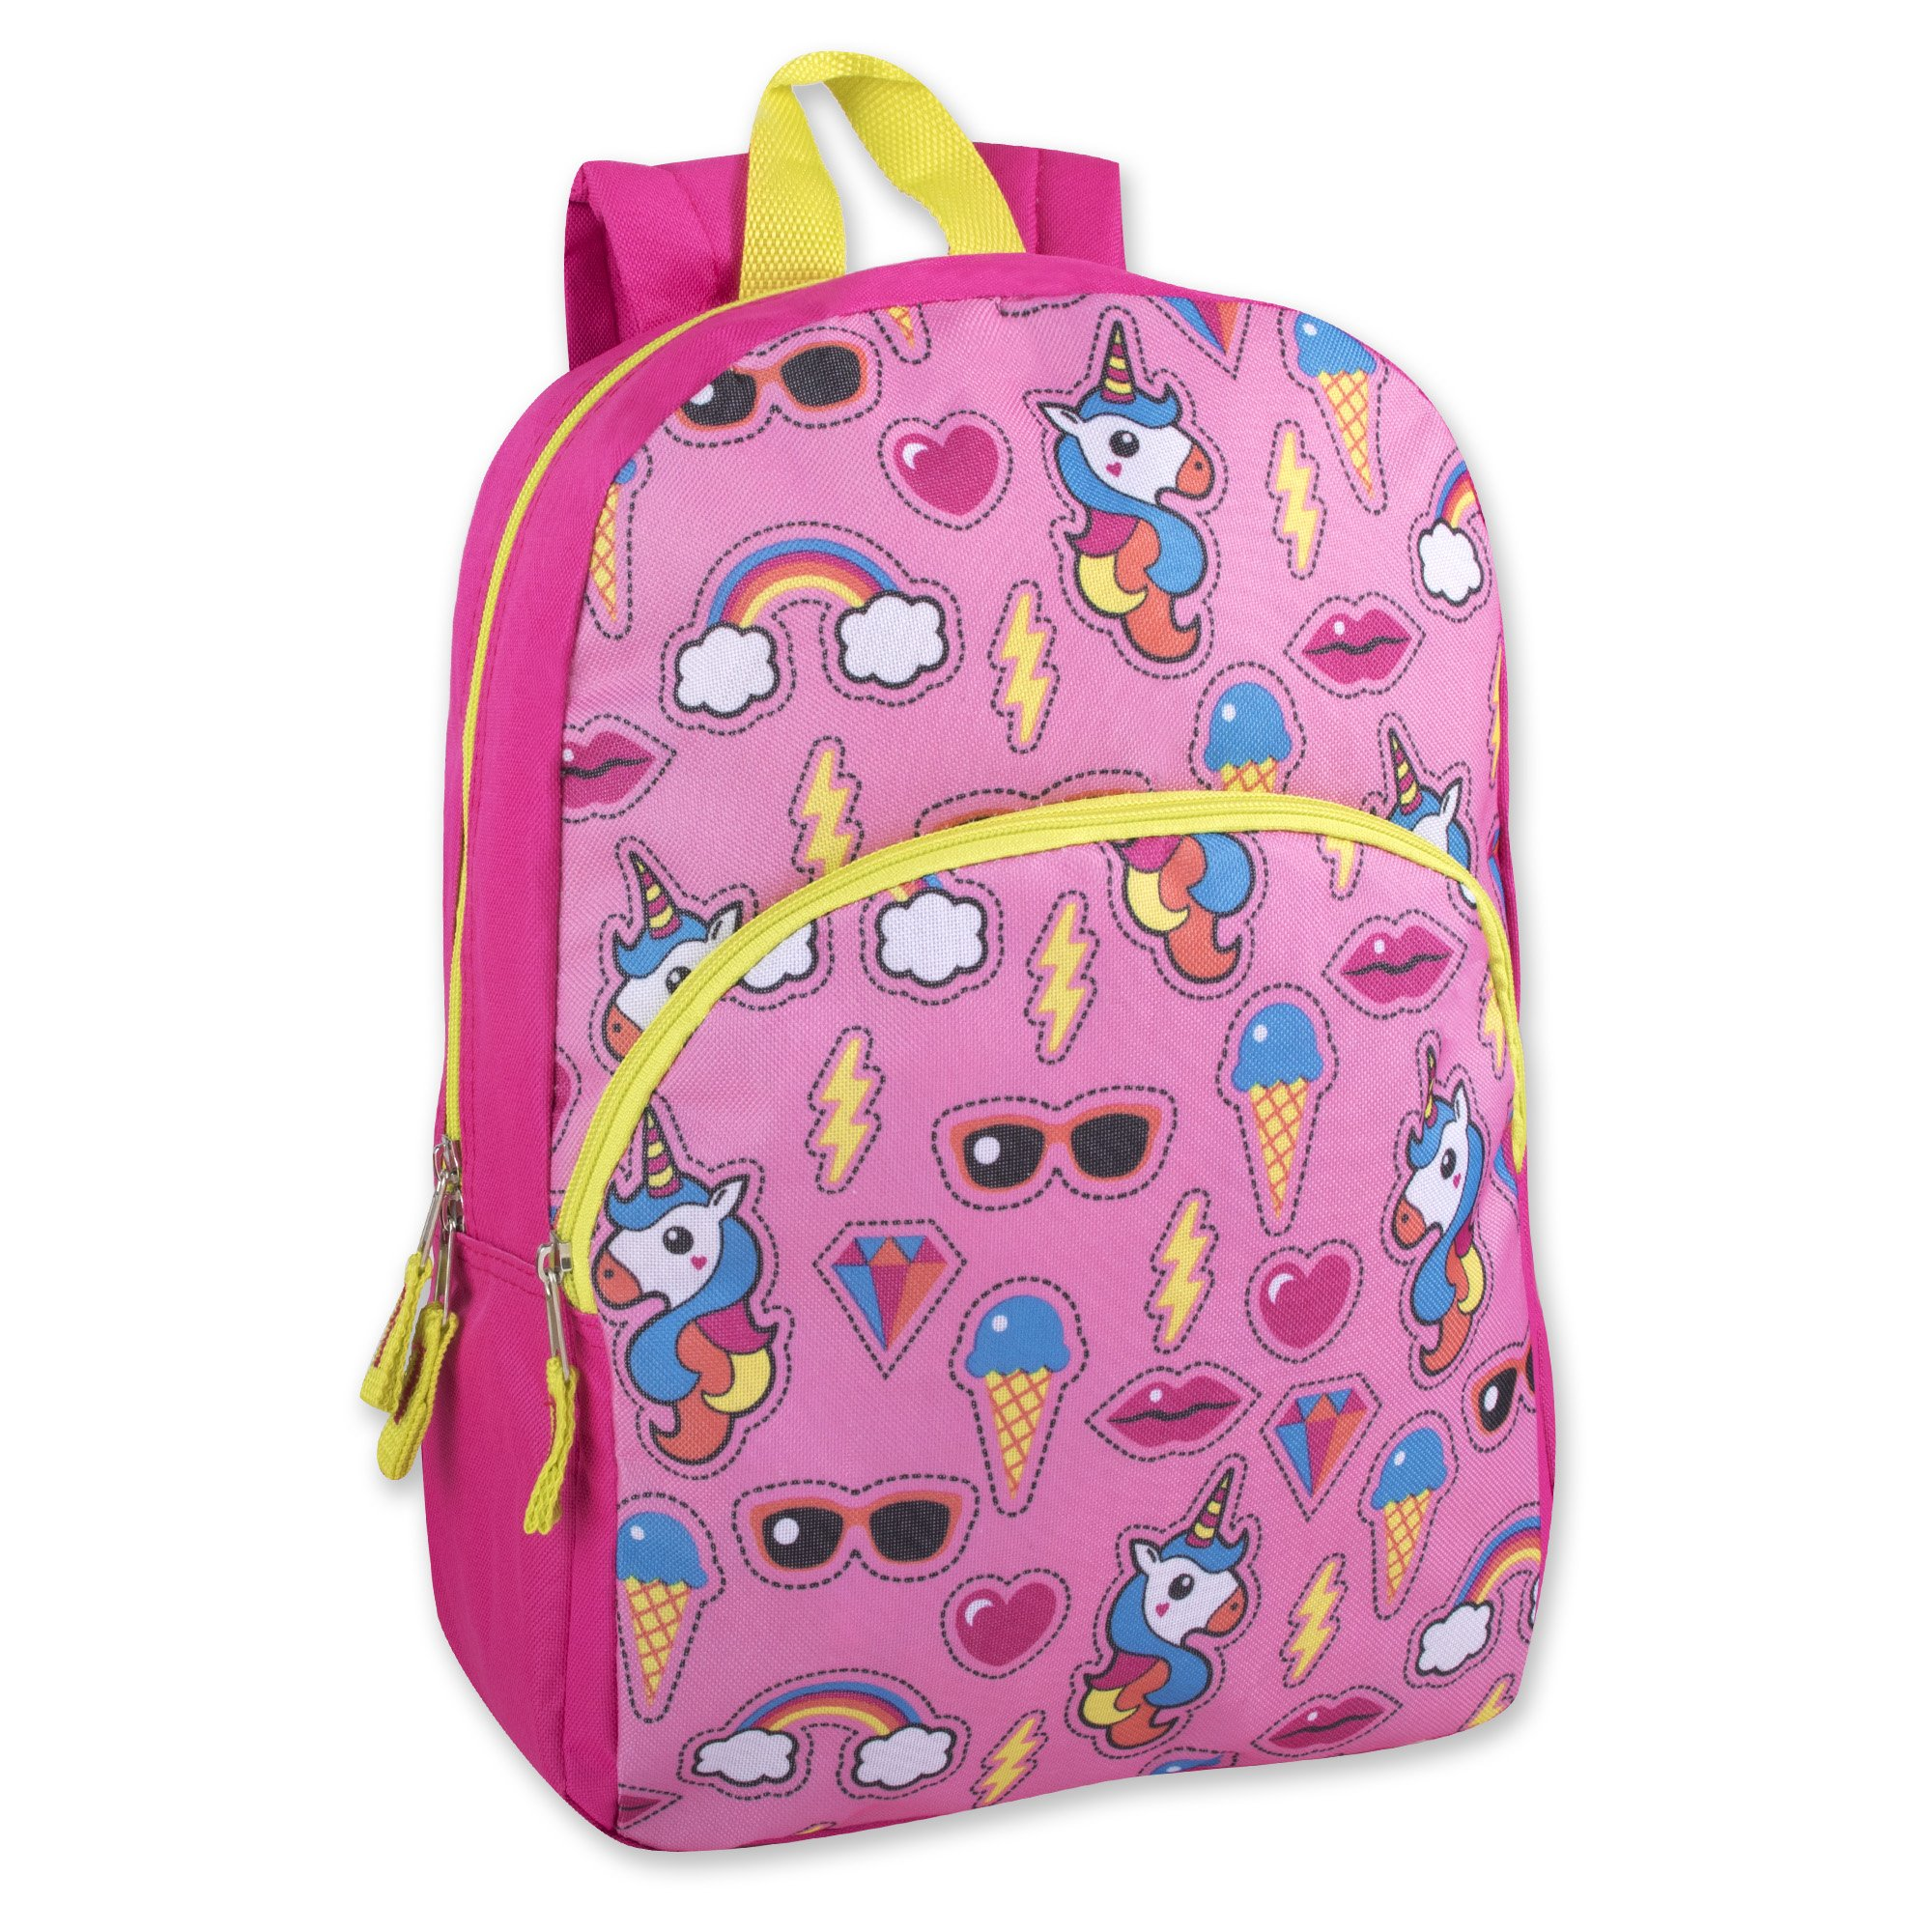 Trail maker Character Backpack (15'') with Fun Fashionable Design for Boys & Girls (Unicorn Adventure) by Trail maker (Image #1)